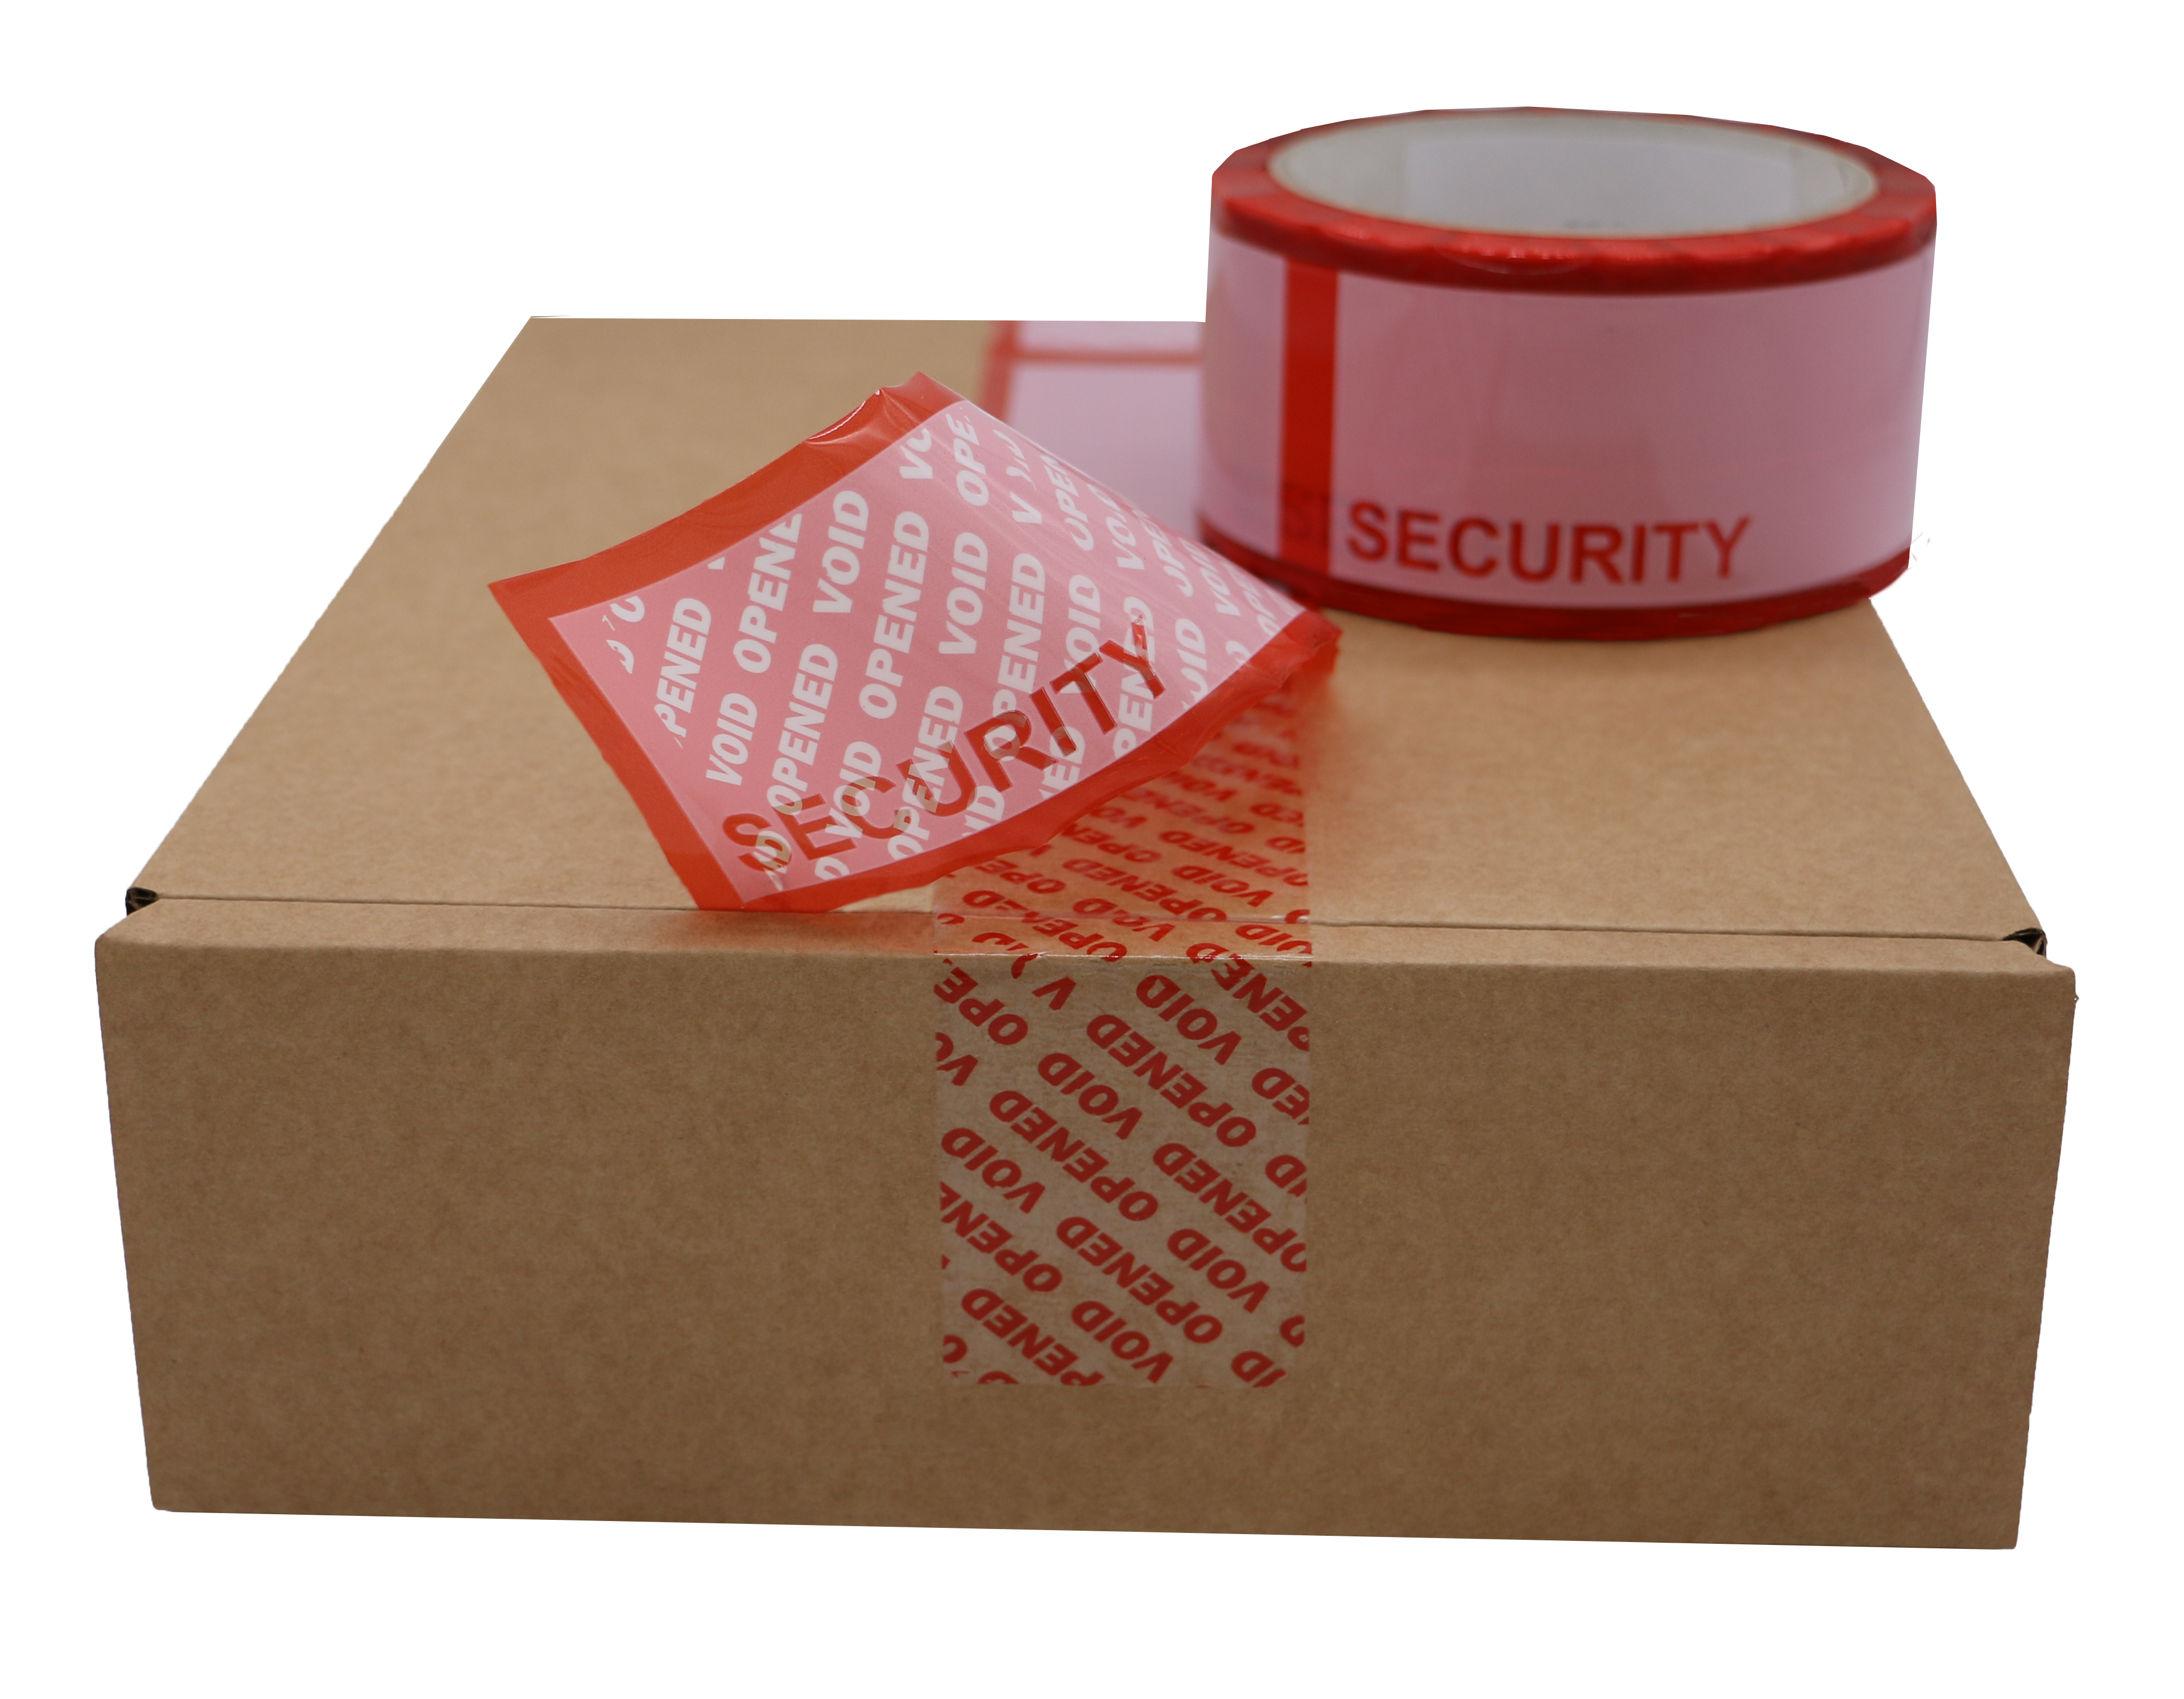 50mm x 50m Tamper Evident Void Tape